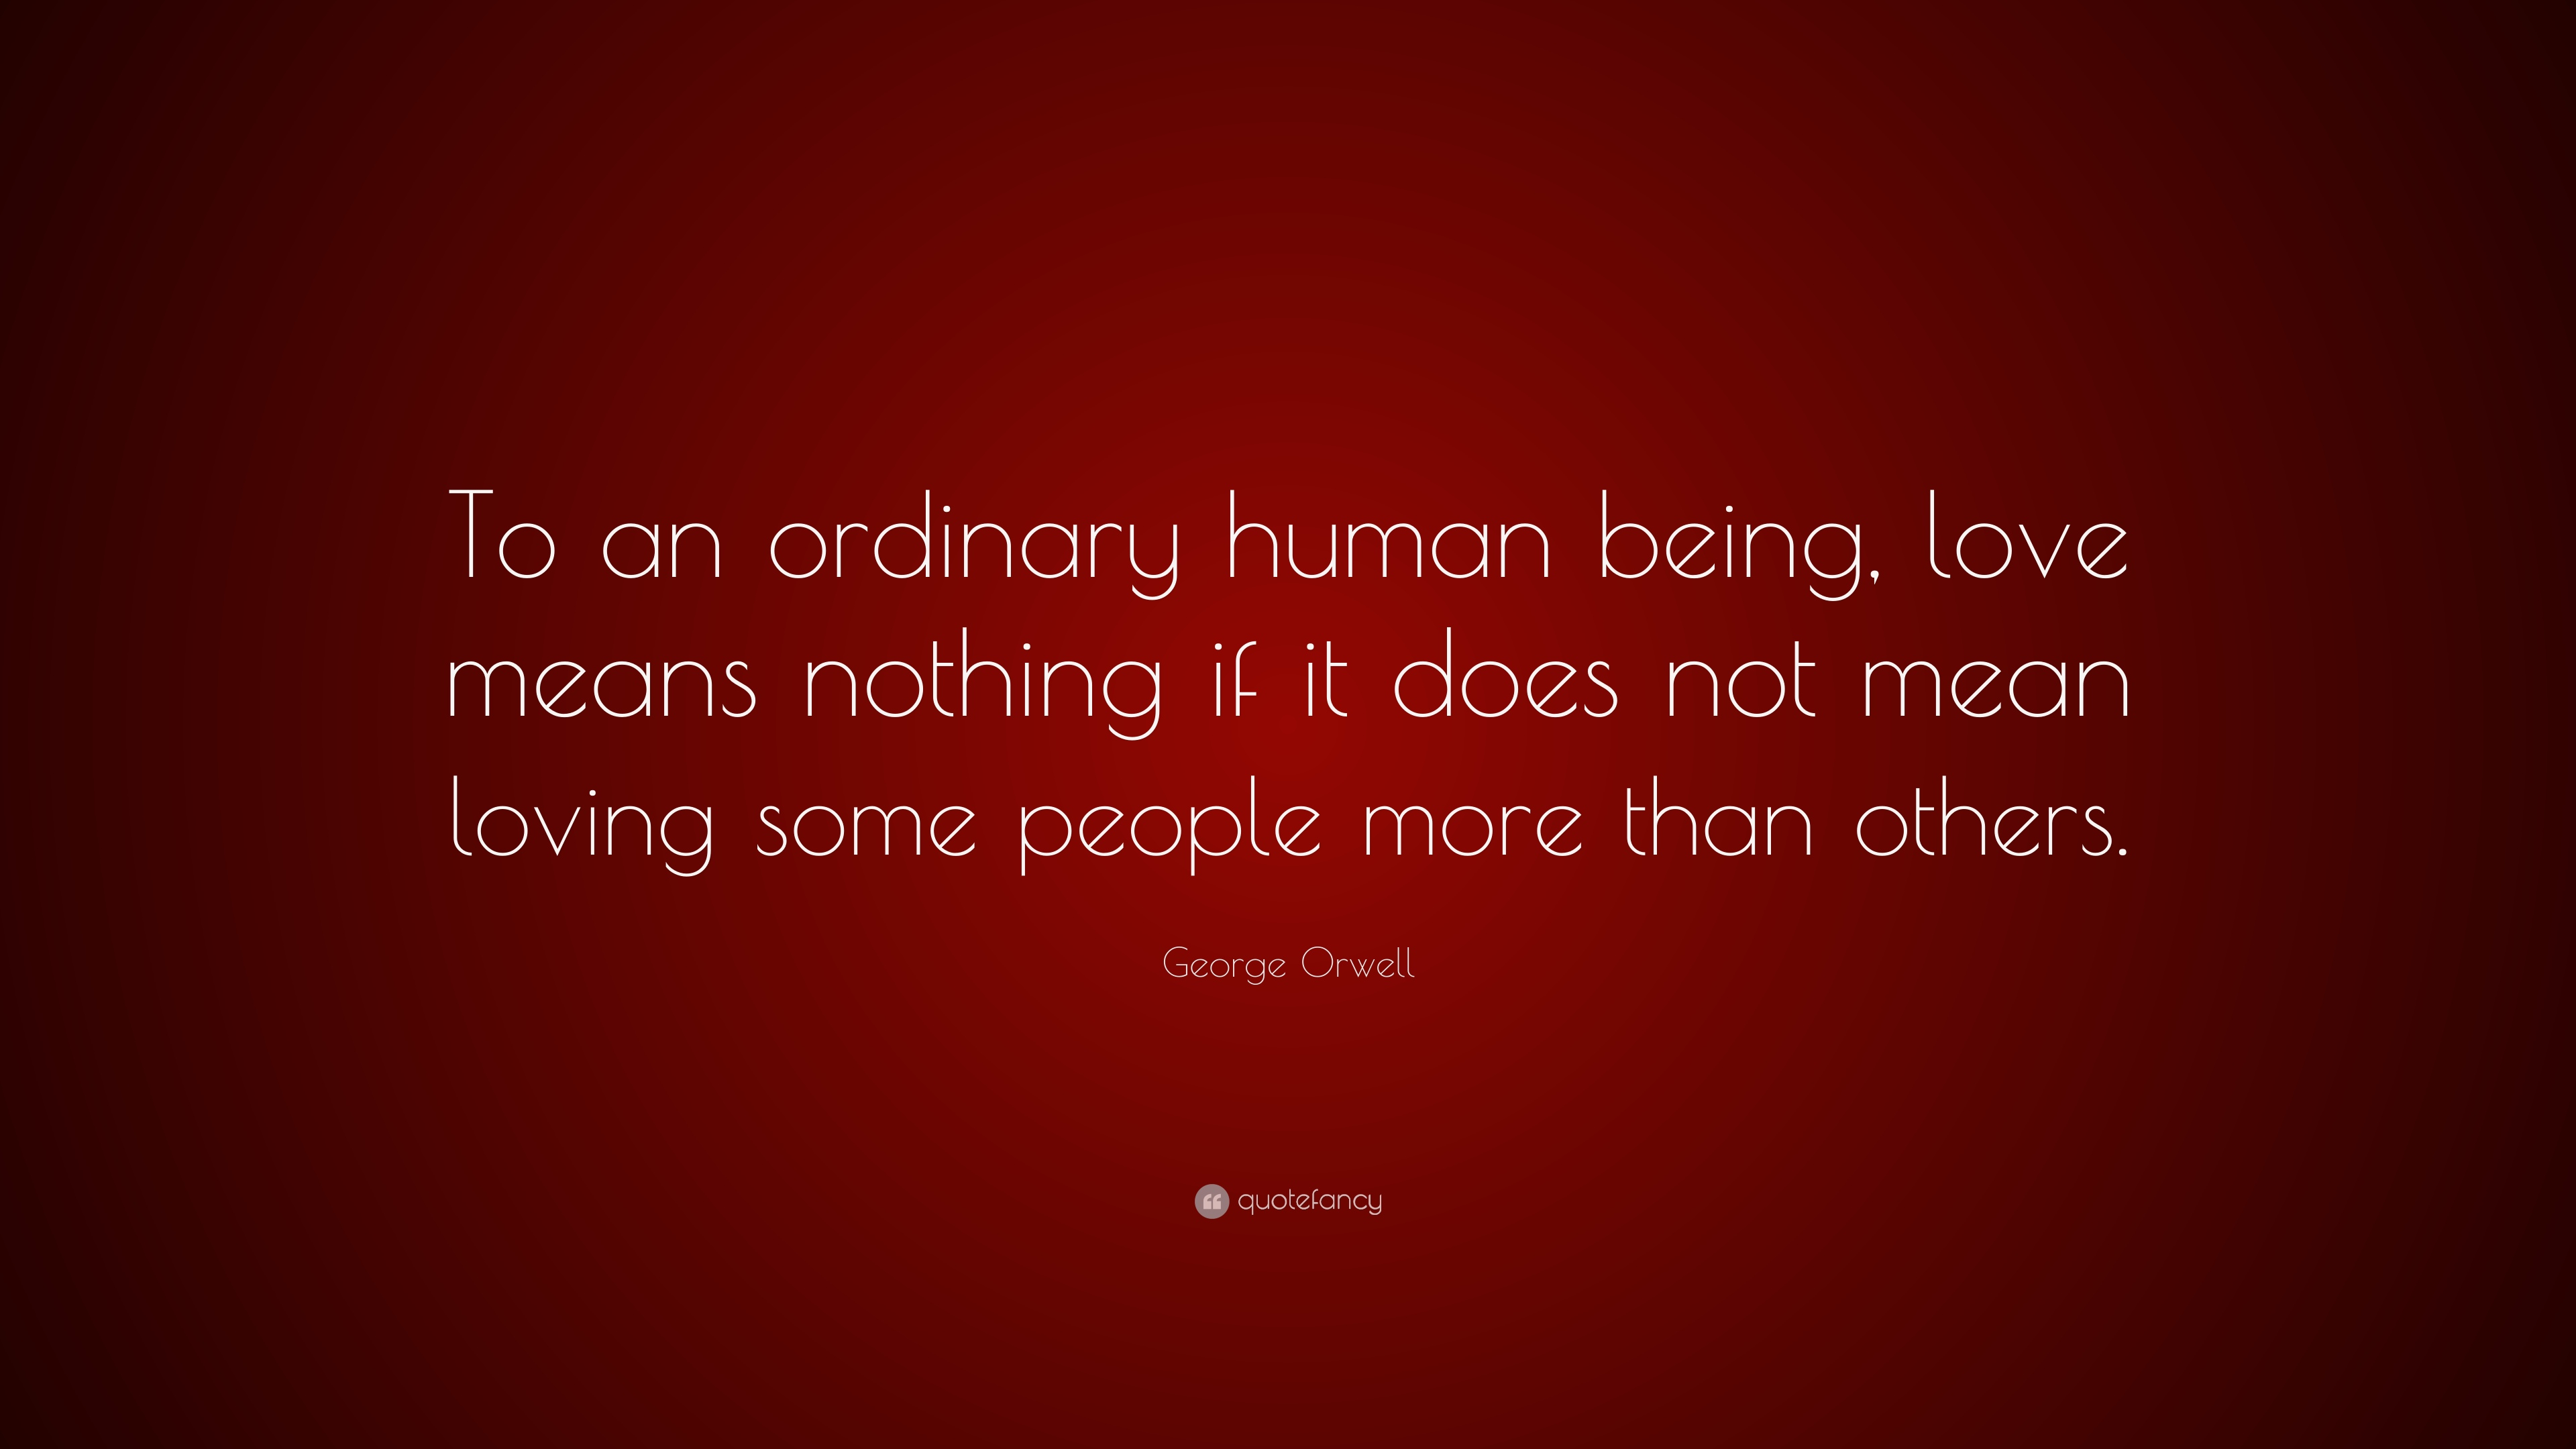 George Orwell Quote To An Ordinary Human Being Love Means Nothing